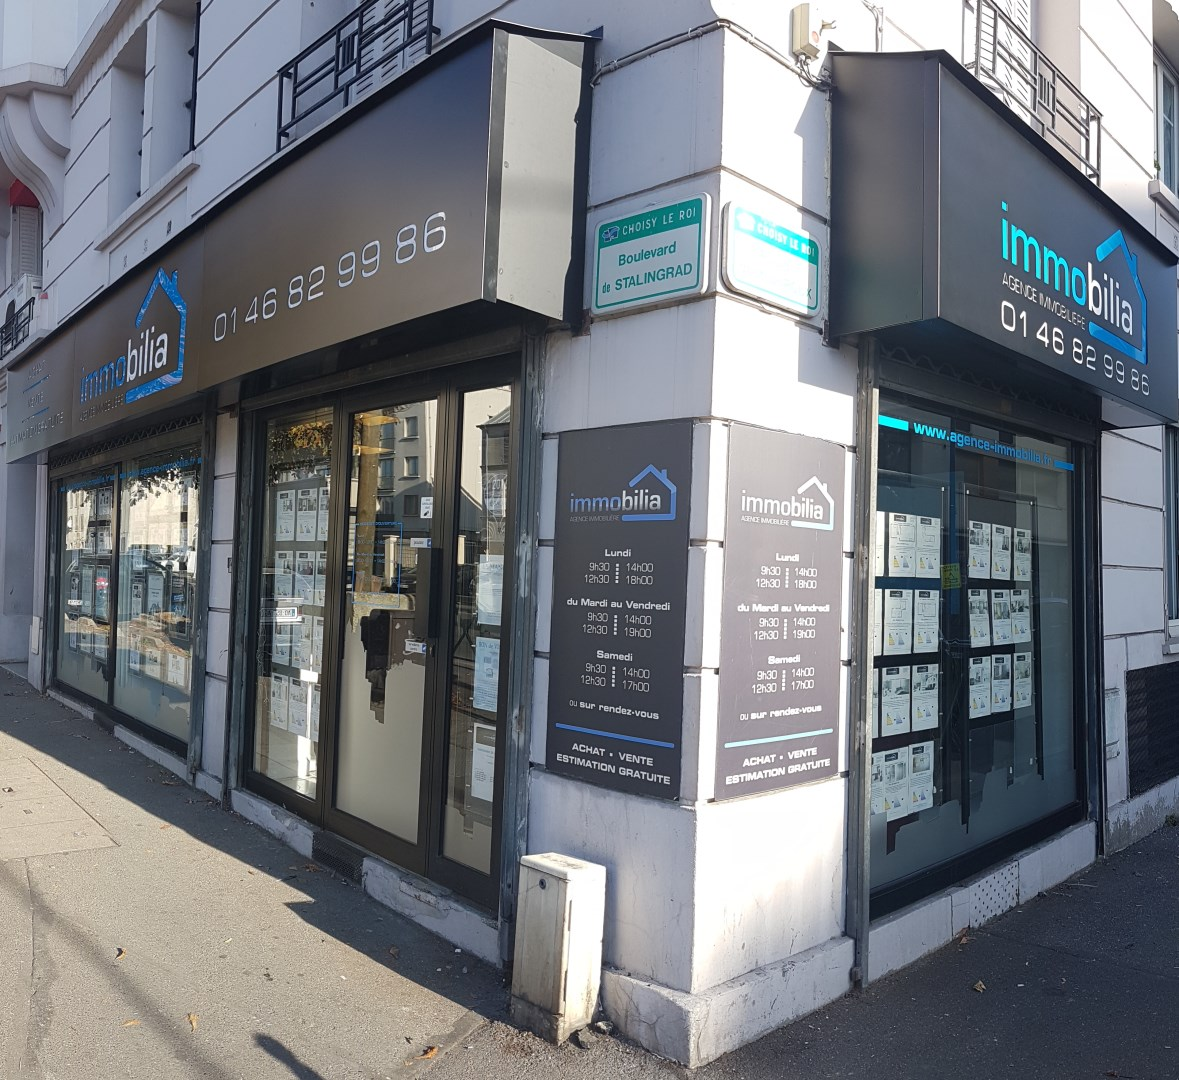 Immobilia agence immobili re choisy le roi for Agence immobiliere 94